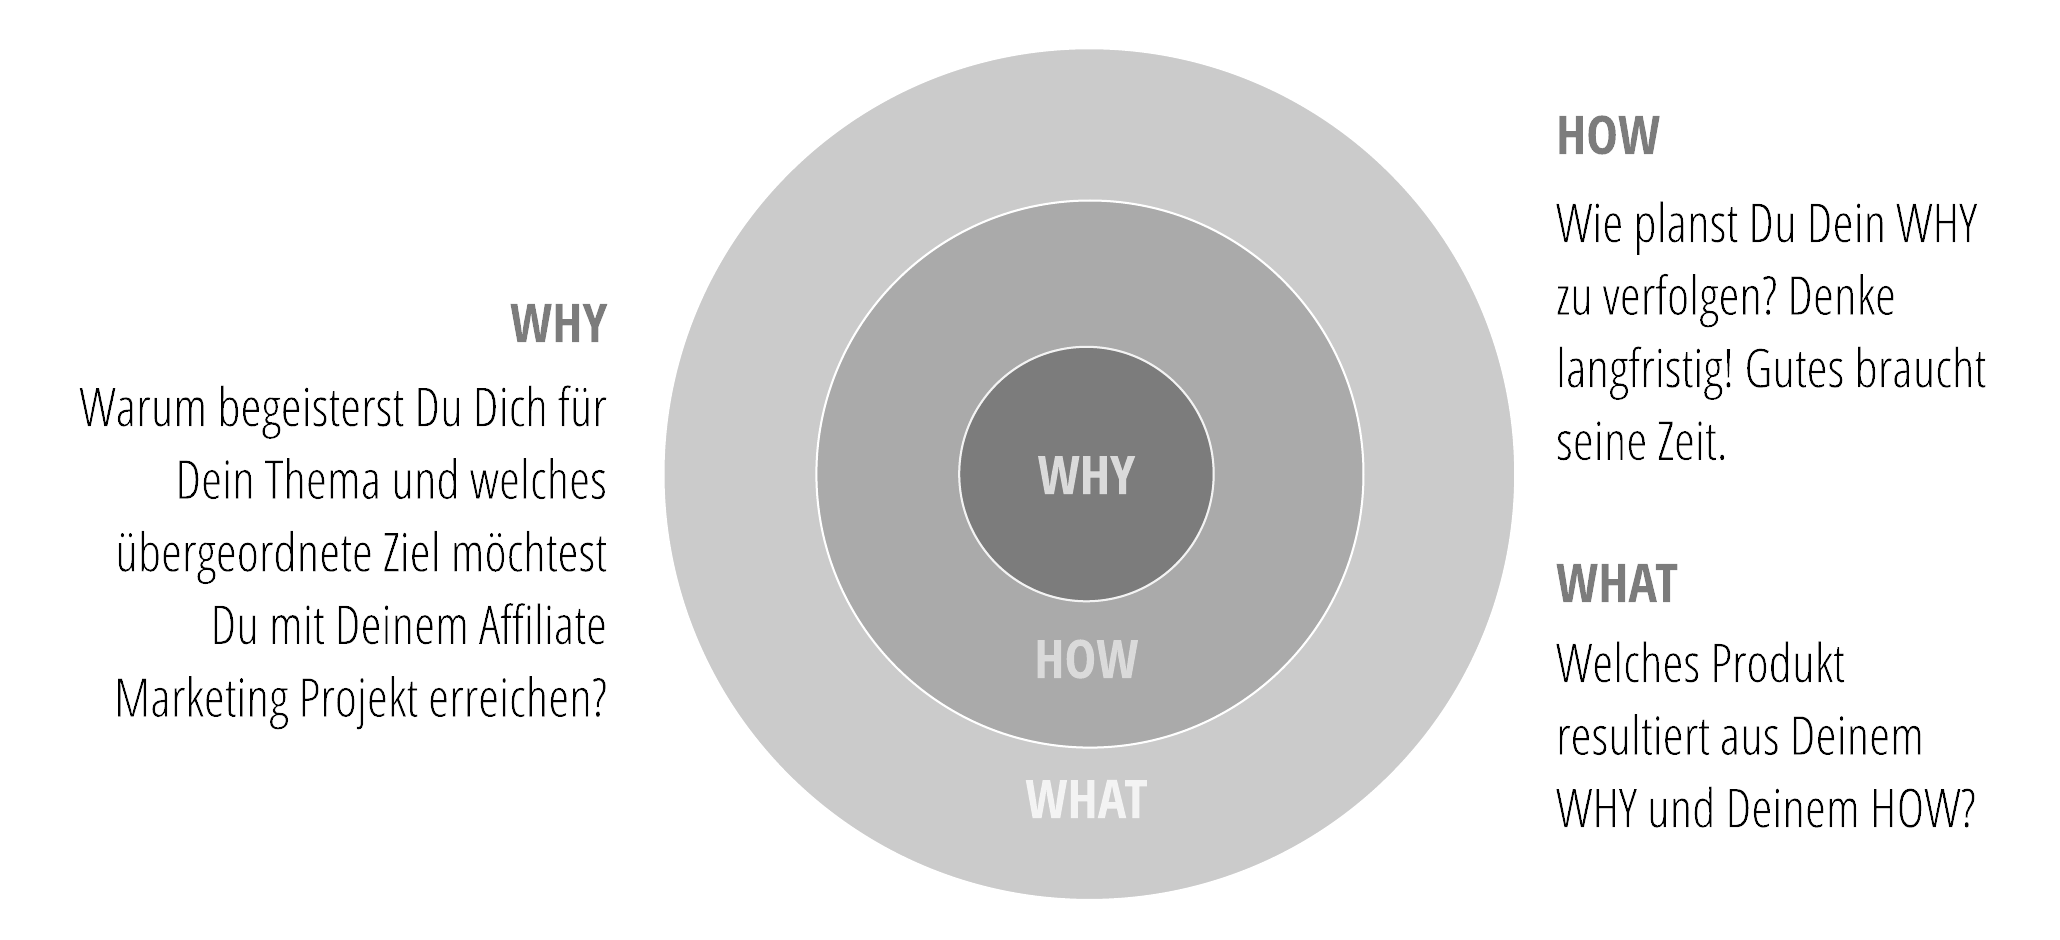 WHY -> HOW -> WHAT für Affiliate Marketing Projekte nach Simon Sinek.